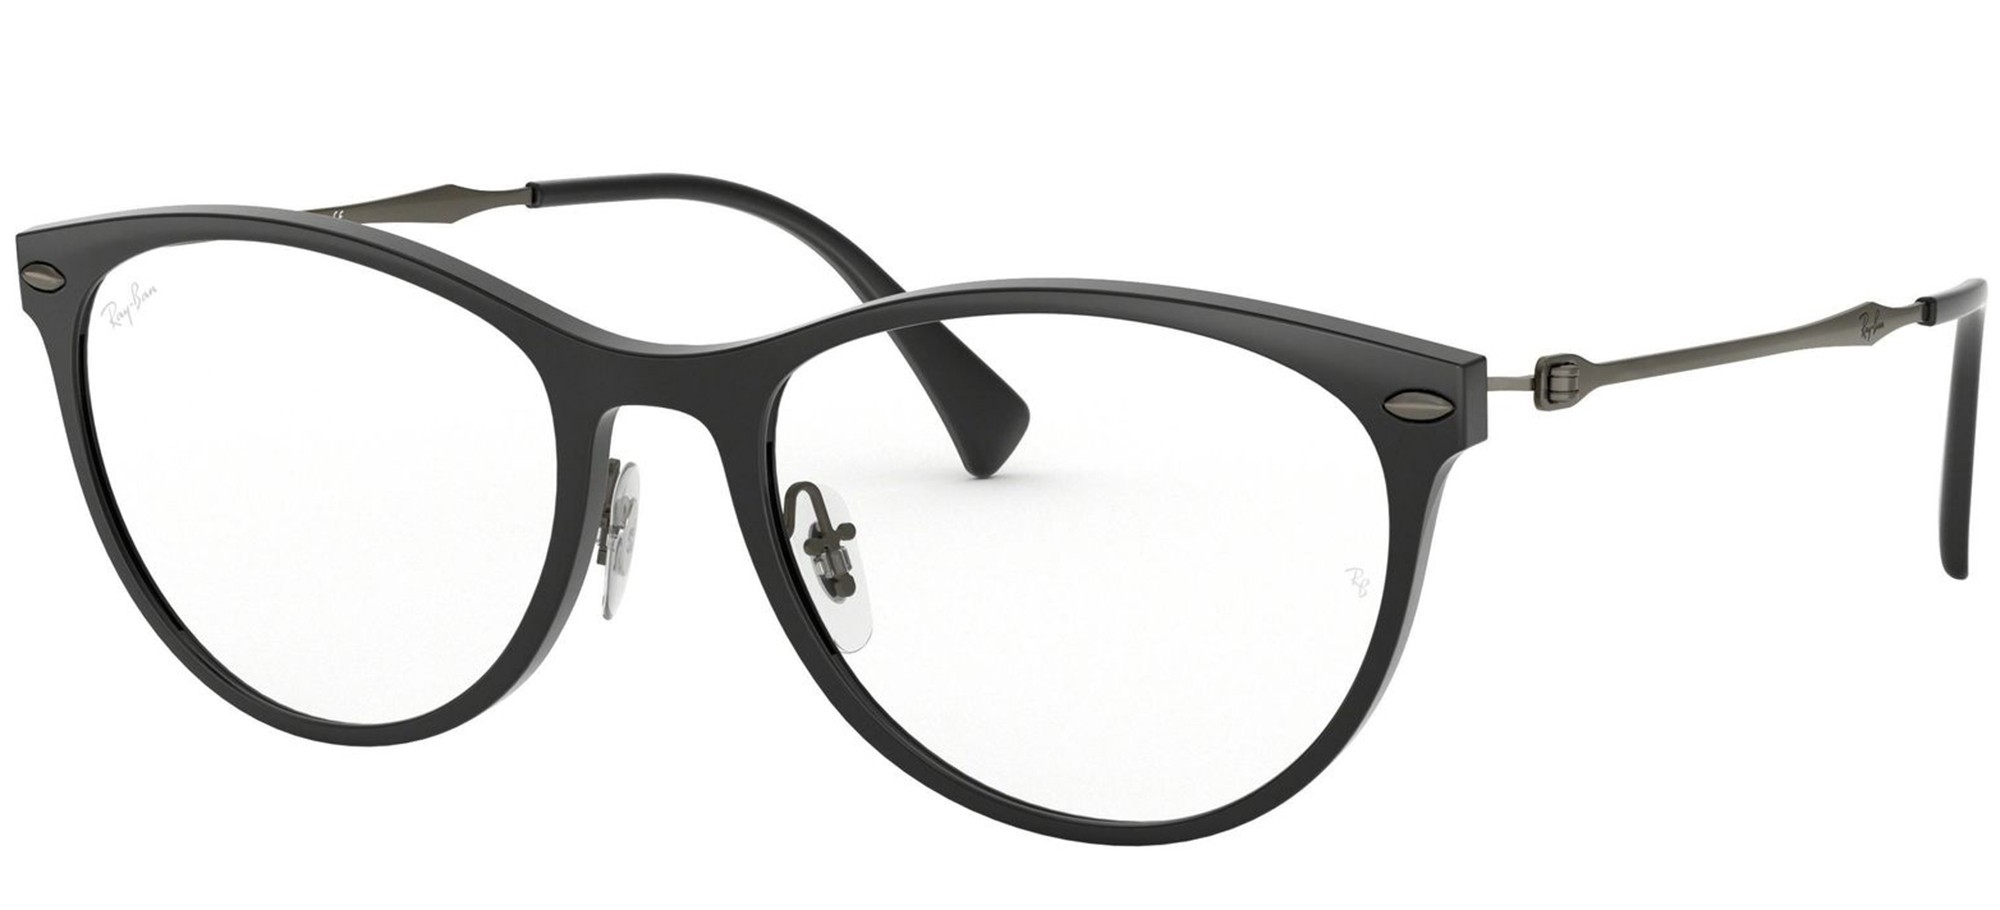 Ray-Ban eyeglasses LIGHT RAY RX 7160